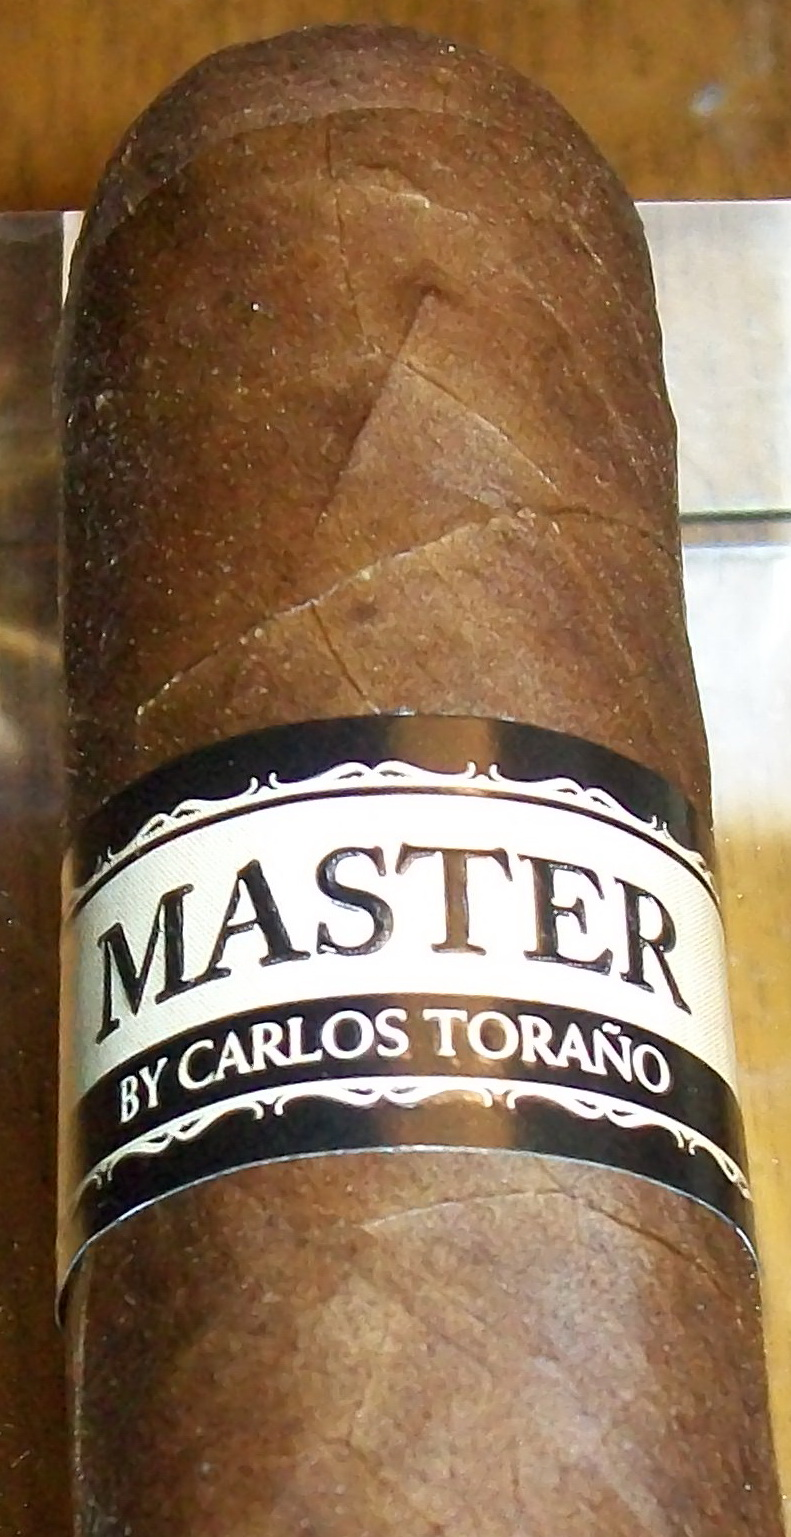 Cigar Review: Master by Carlos Torano 6 x 60